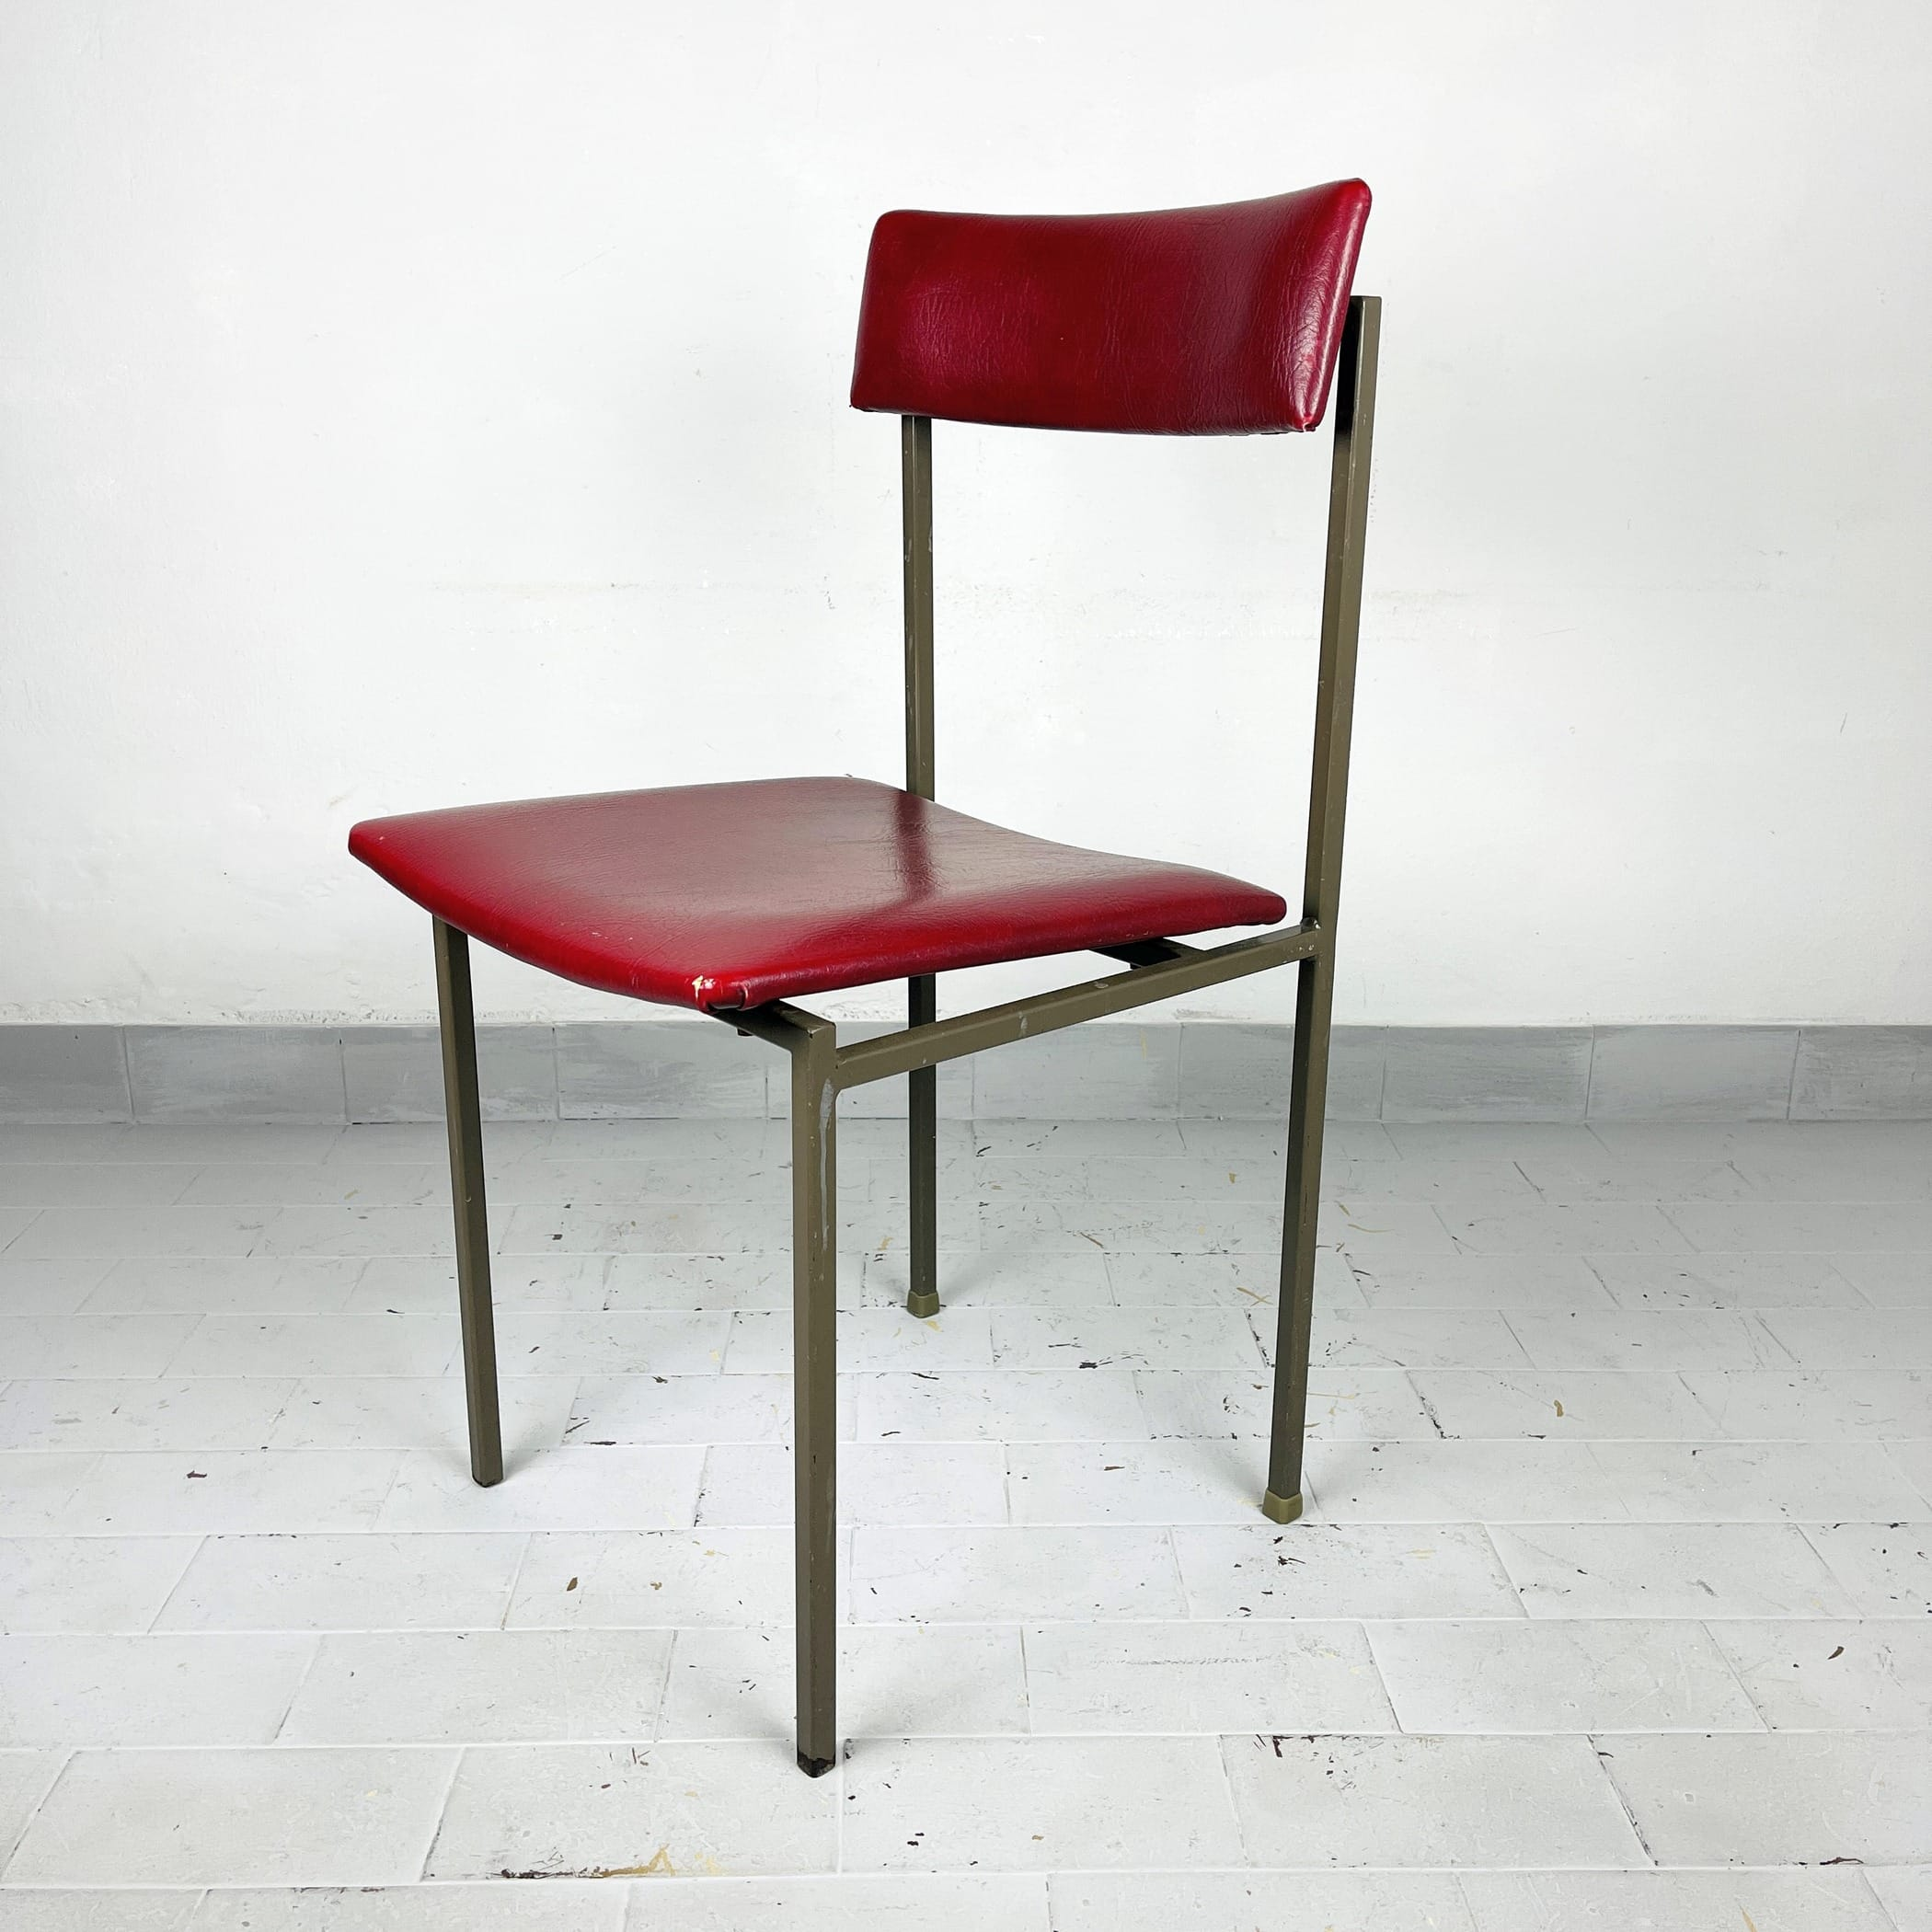 1 of 3 Mid-century dining chairs Stol Kamnik Yugoslavia 1970s Retro home office chair